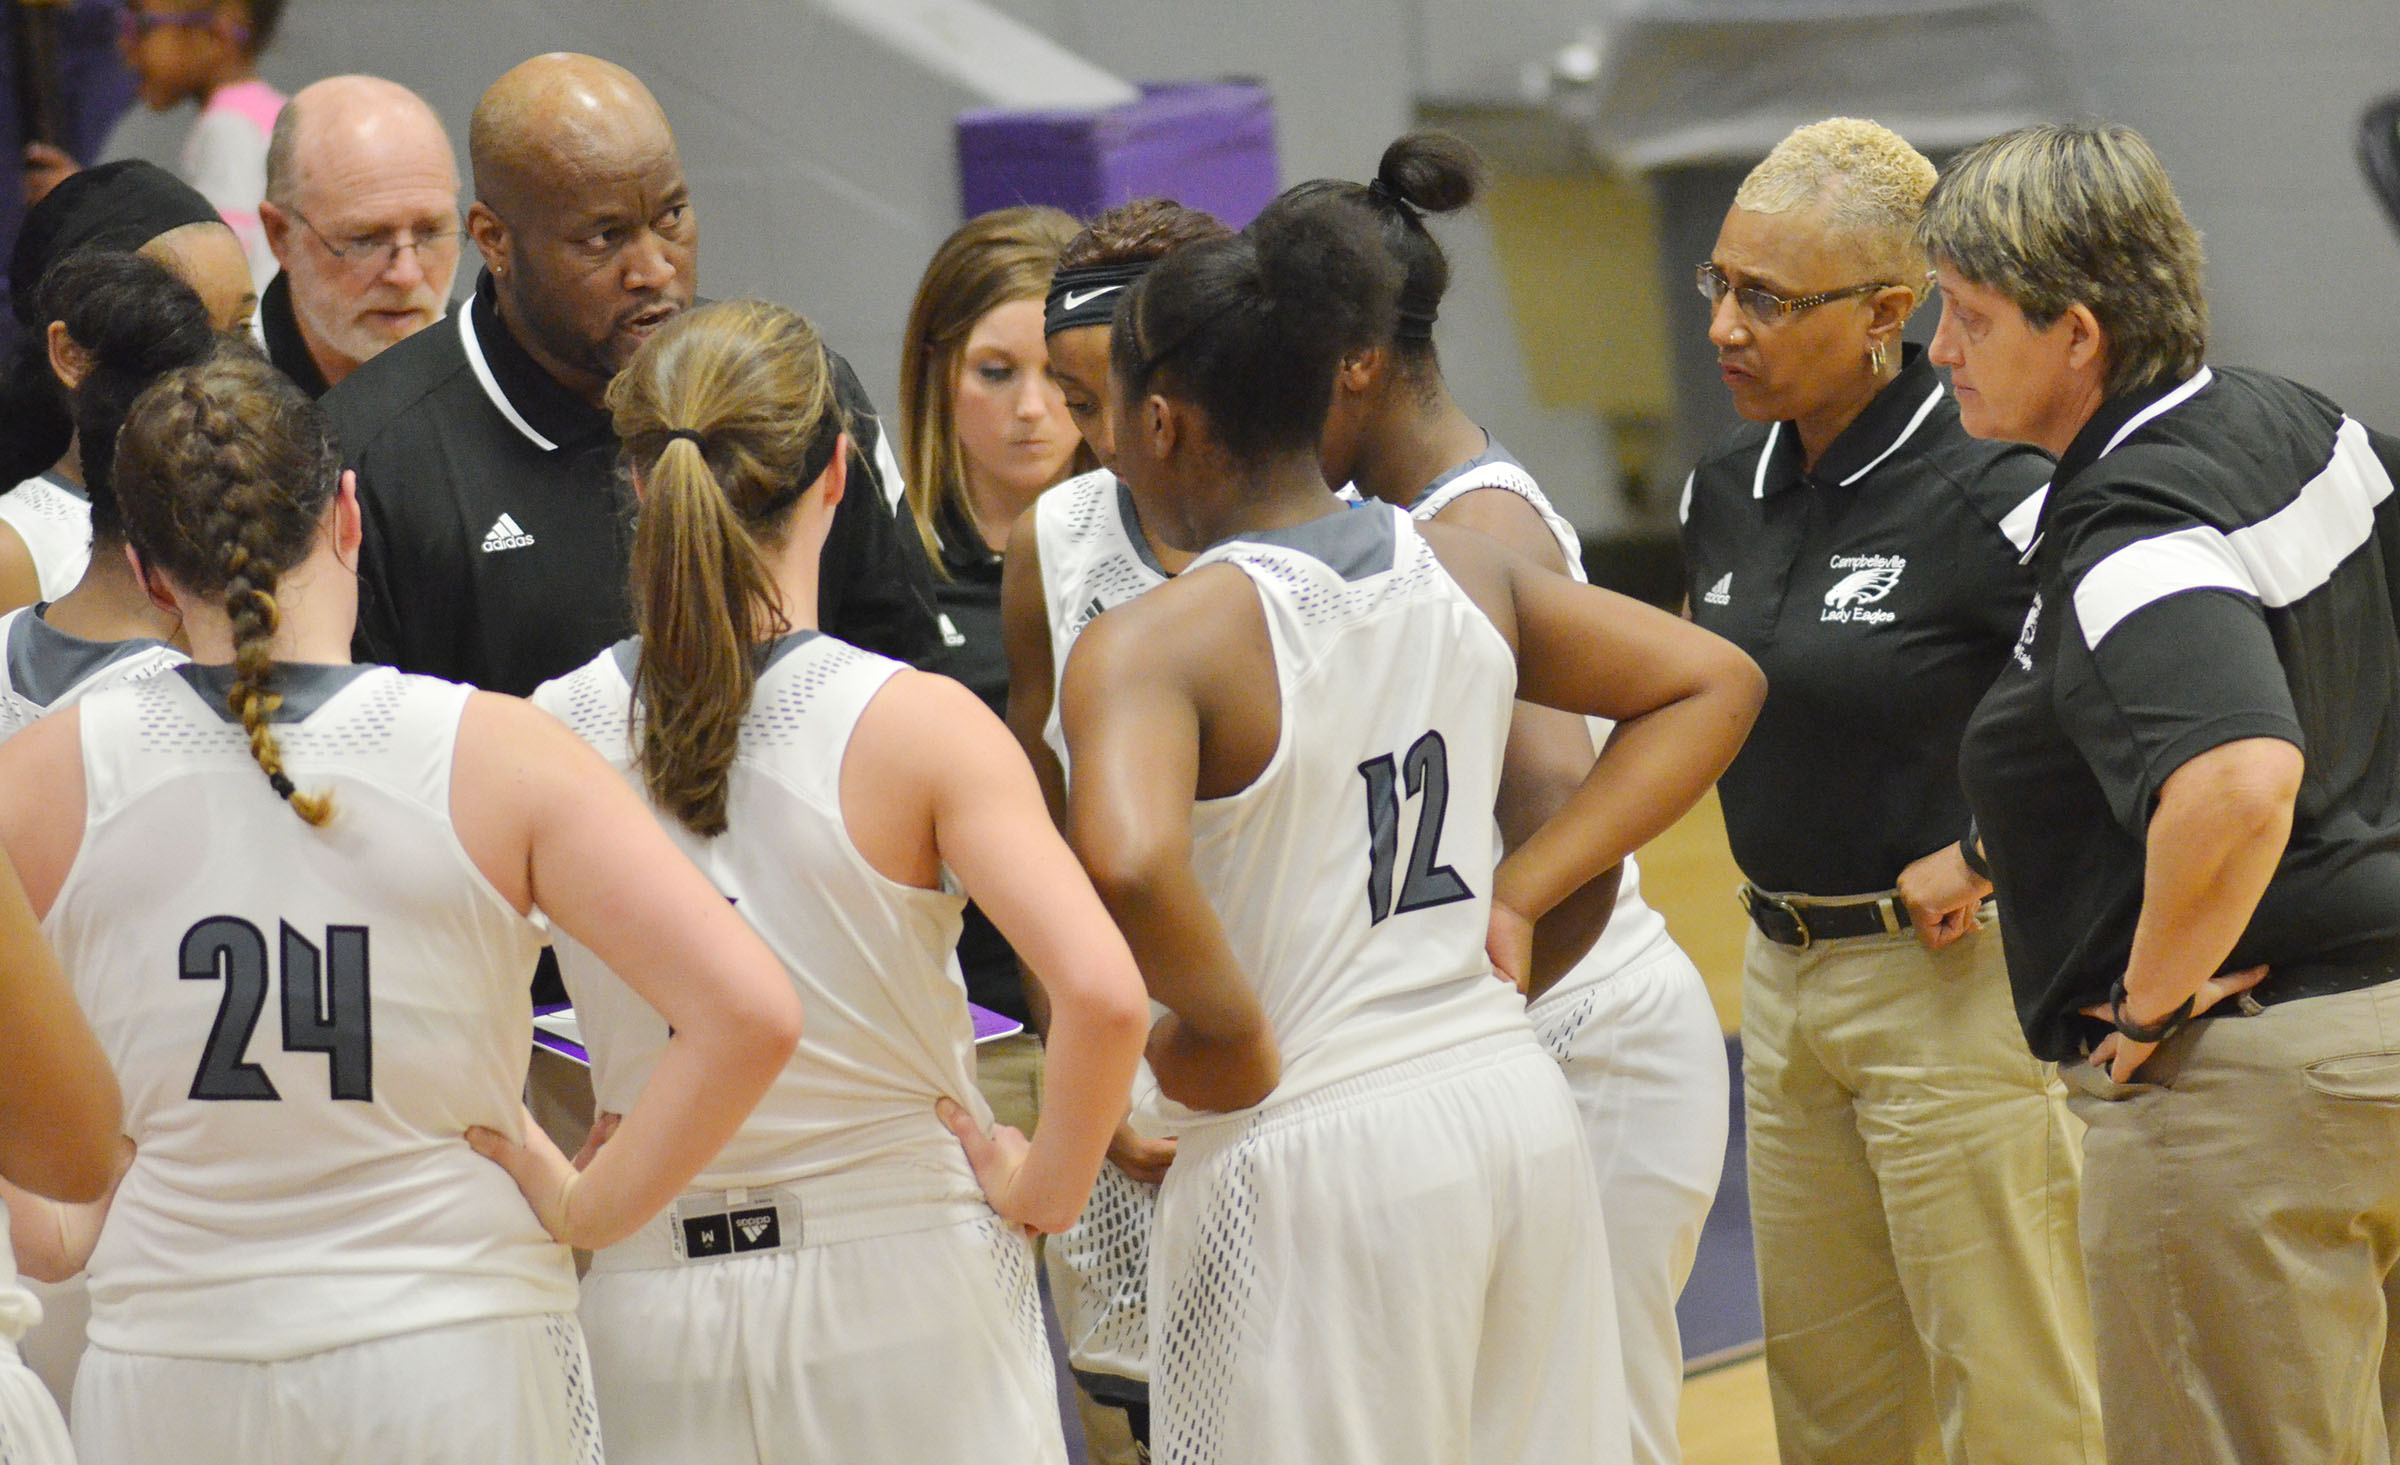 CHS girls' basketball coaches talk to their players.